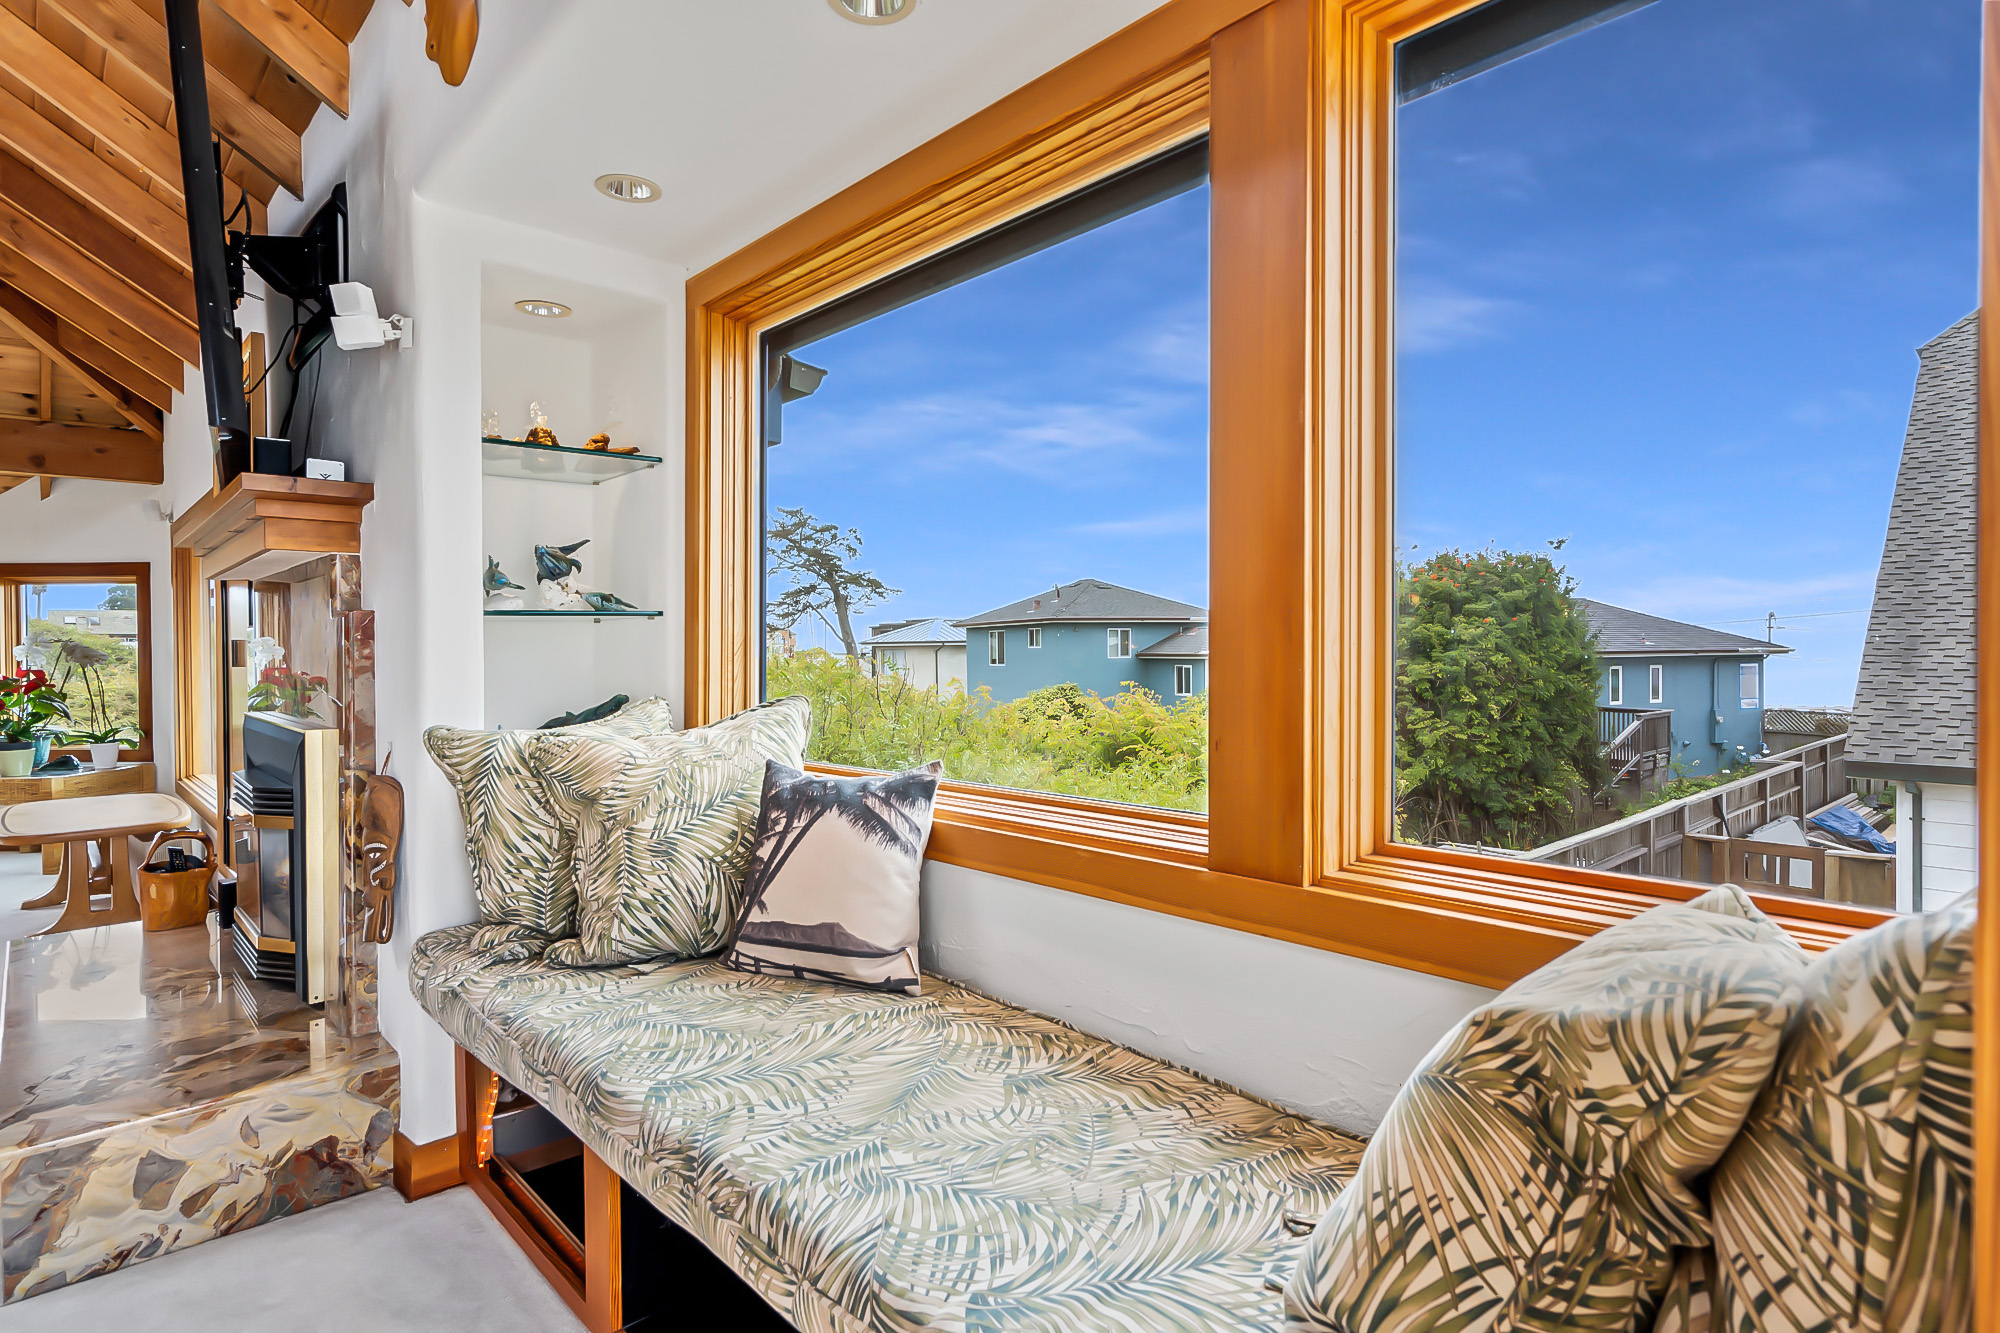 127 bethany curve - window seat with ocean views